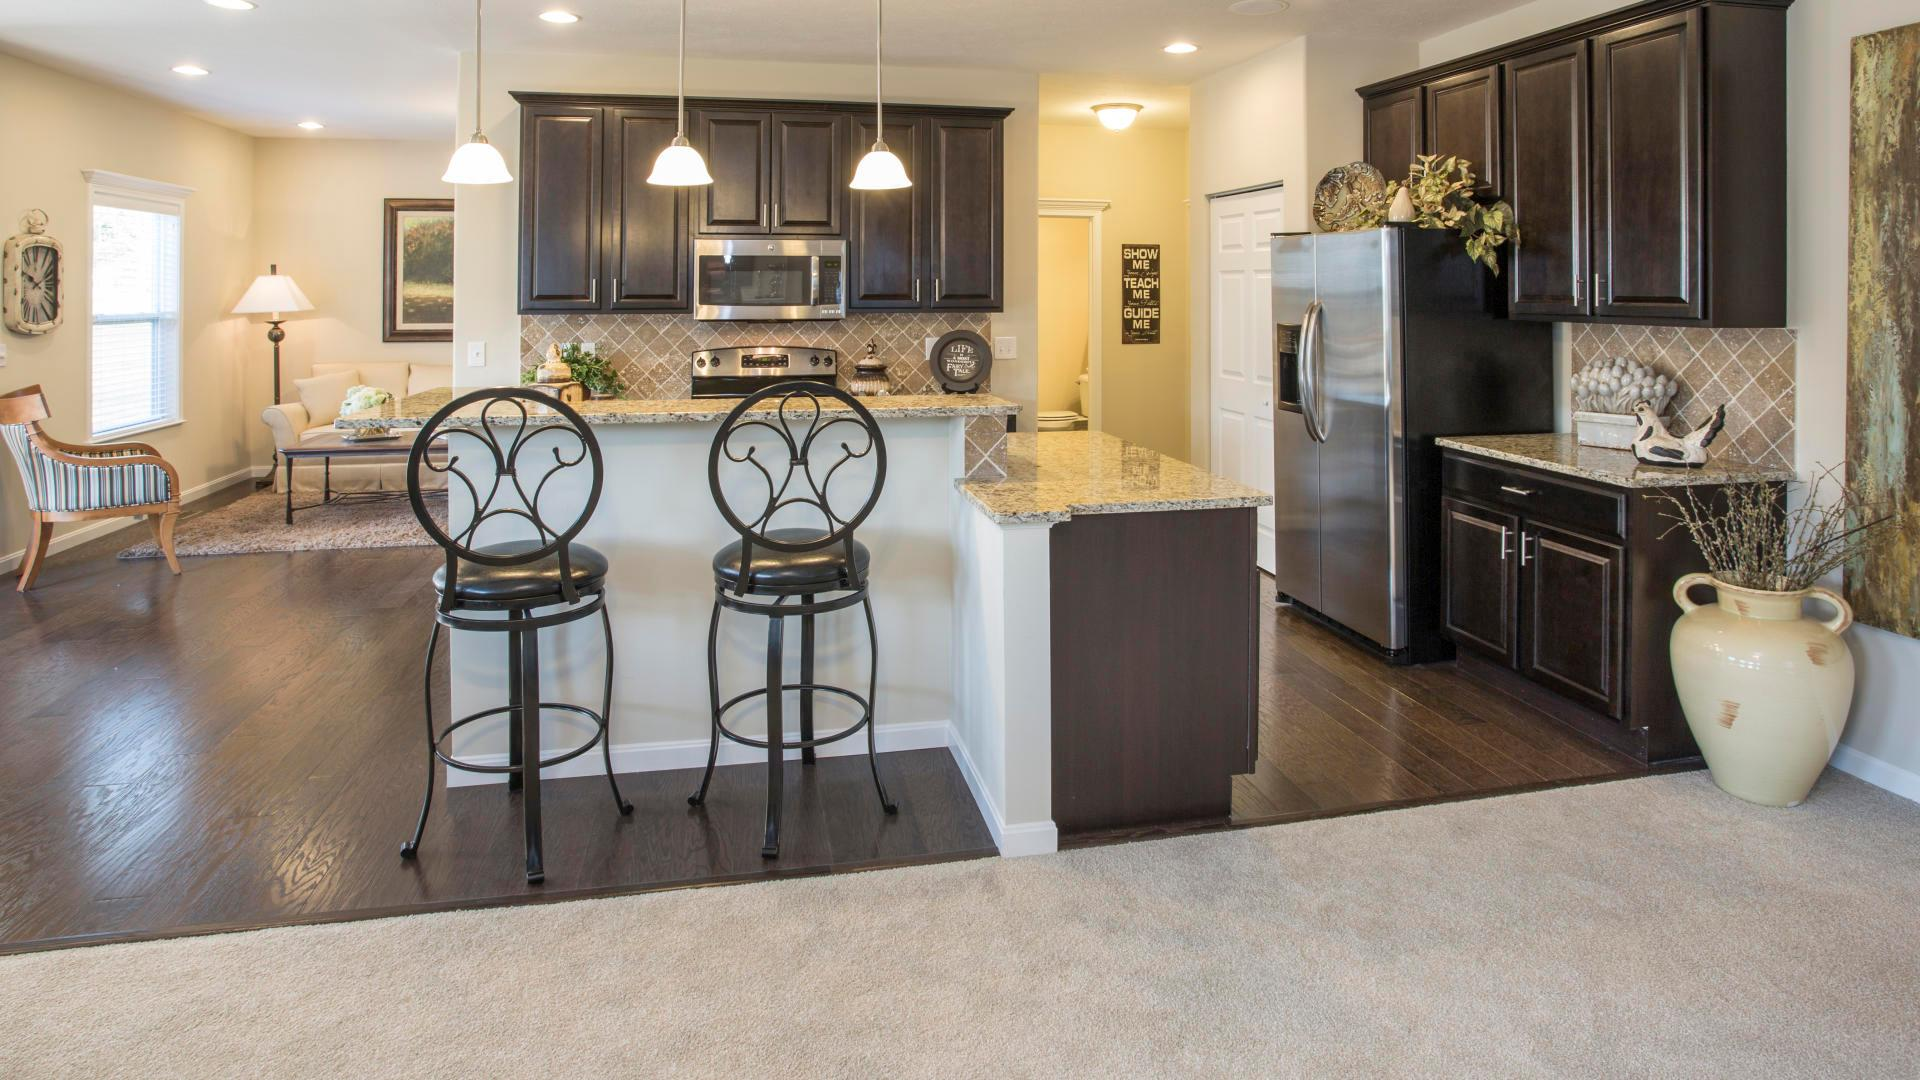 Kitchen featured in the Chatham By Maronda Homes in Cincinnati, OH